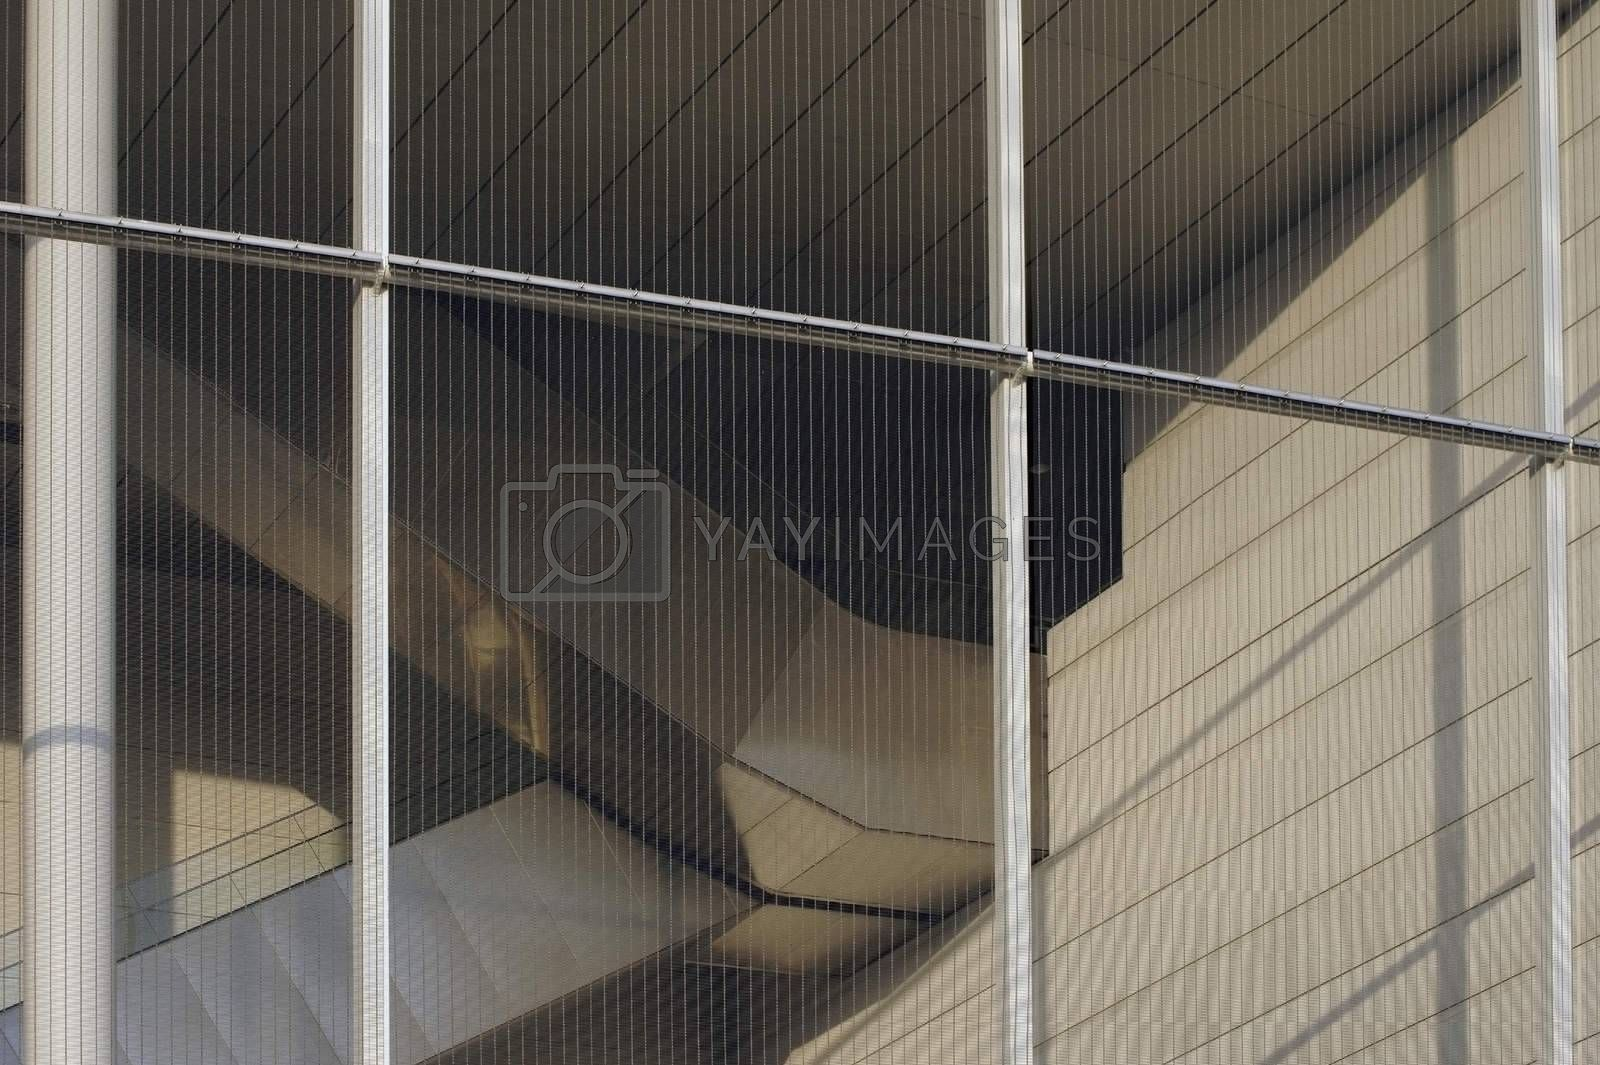 The bottom view of a edgy duct of a public building behind a mesh fence.